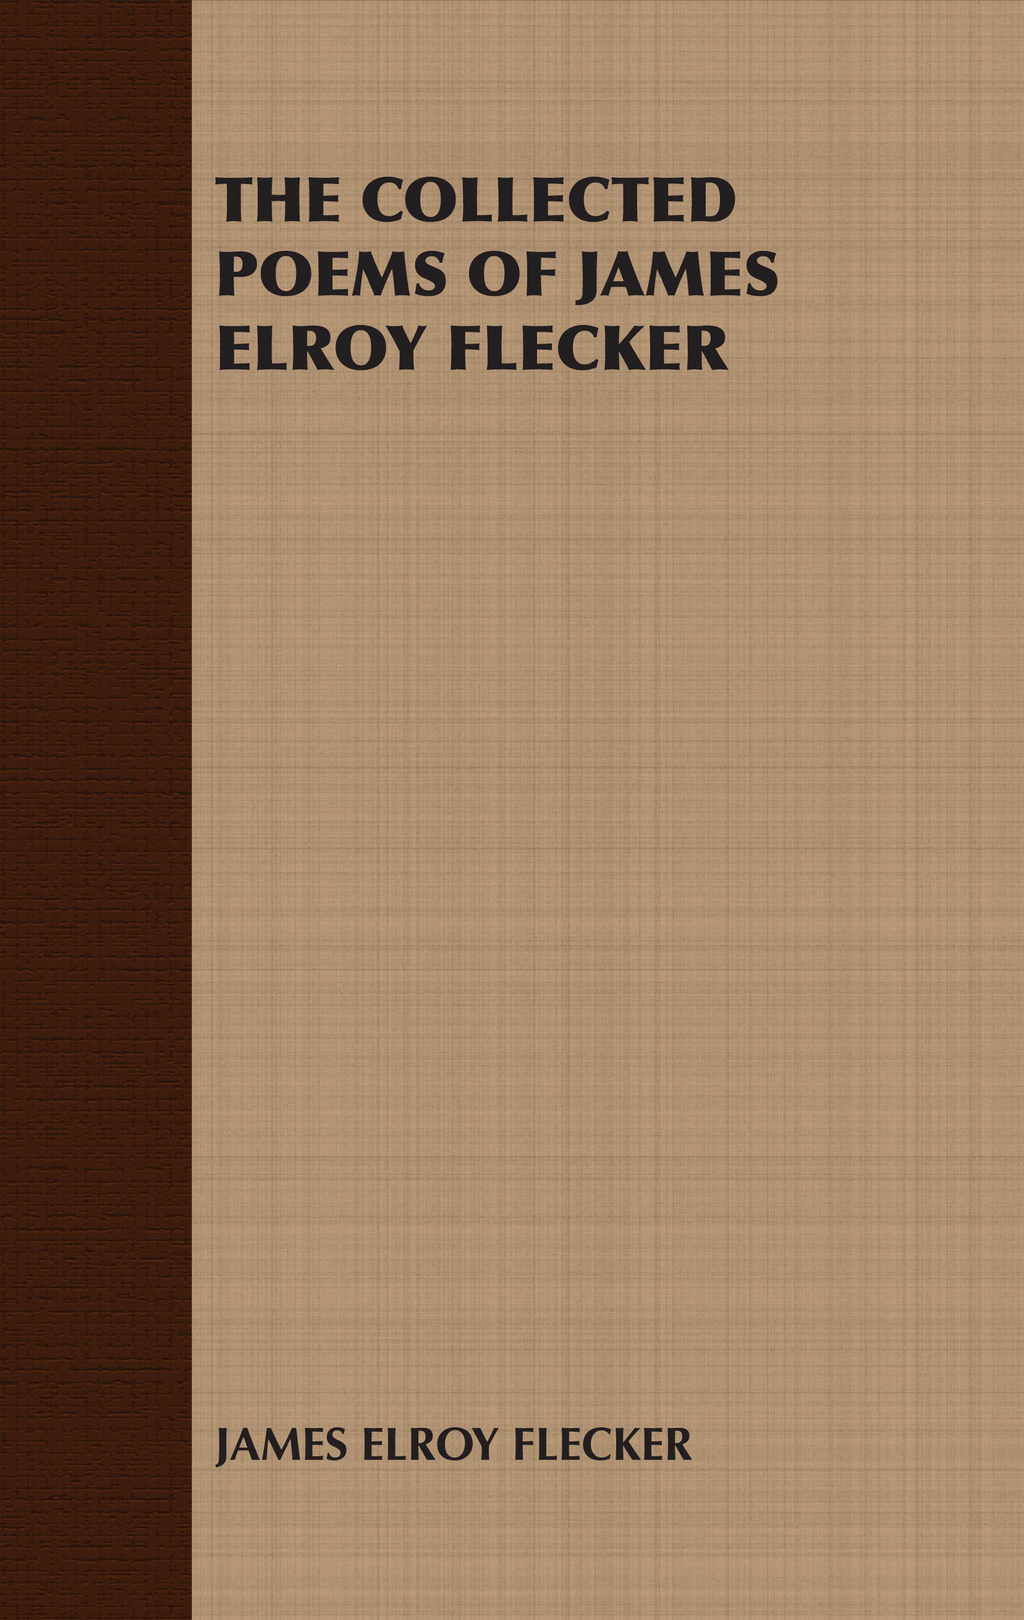 THE COLLECTED POEMS OF JAMES ELROY FLECKER